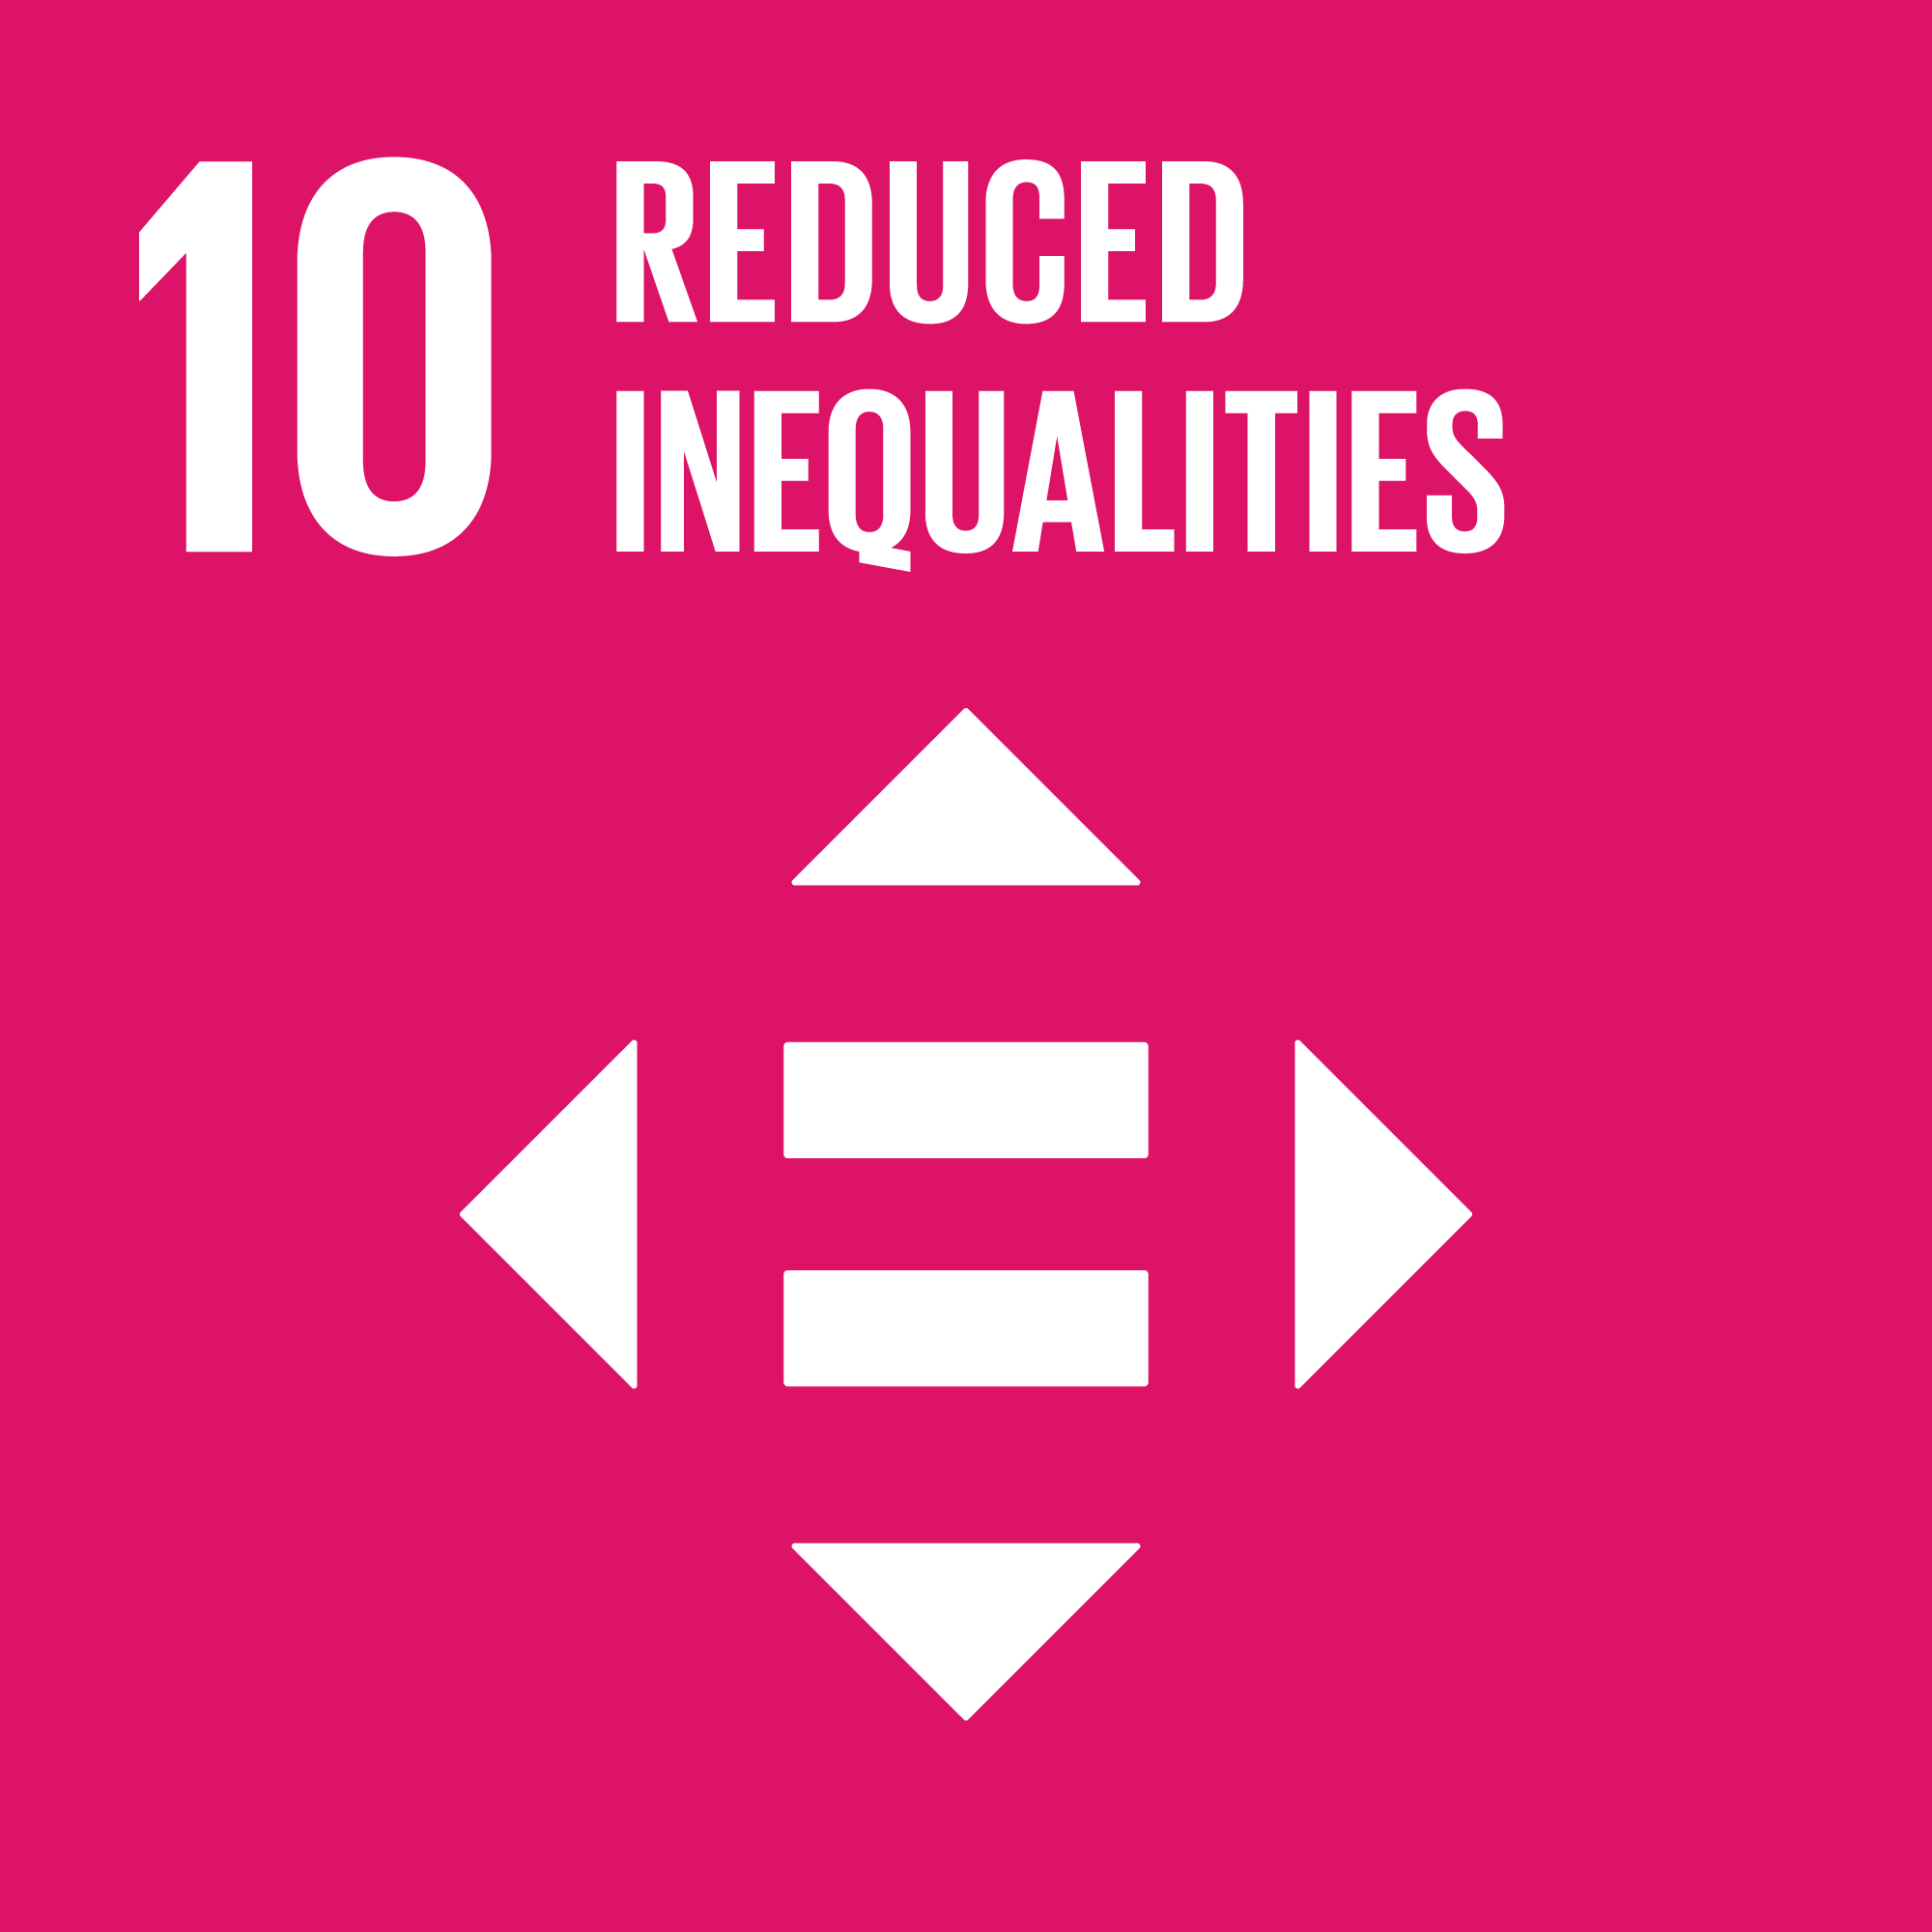 Icon for the global goals number 10, Reduced inequalities